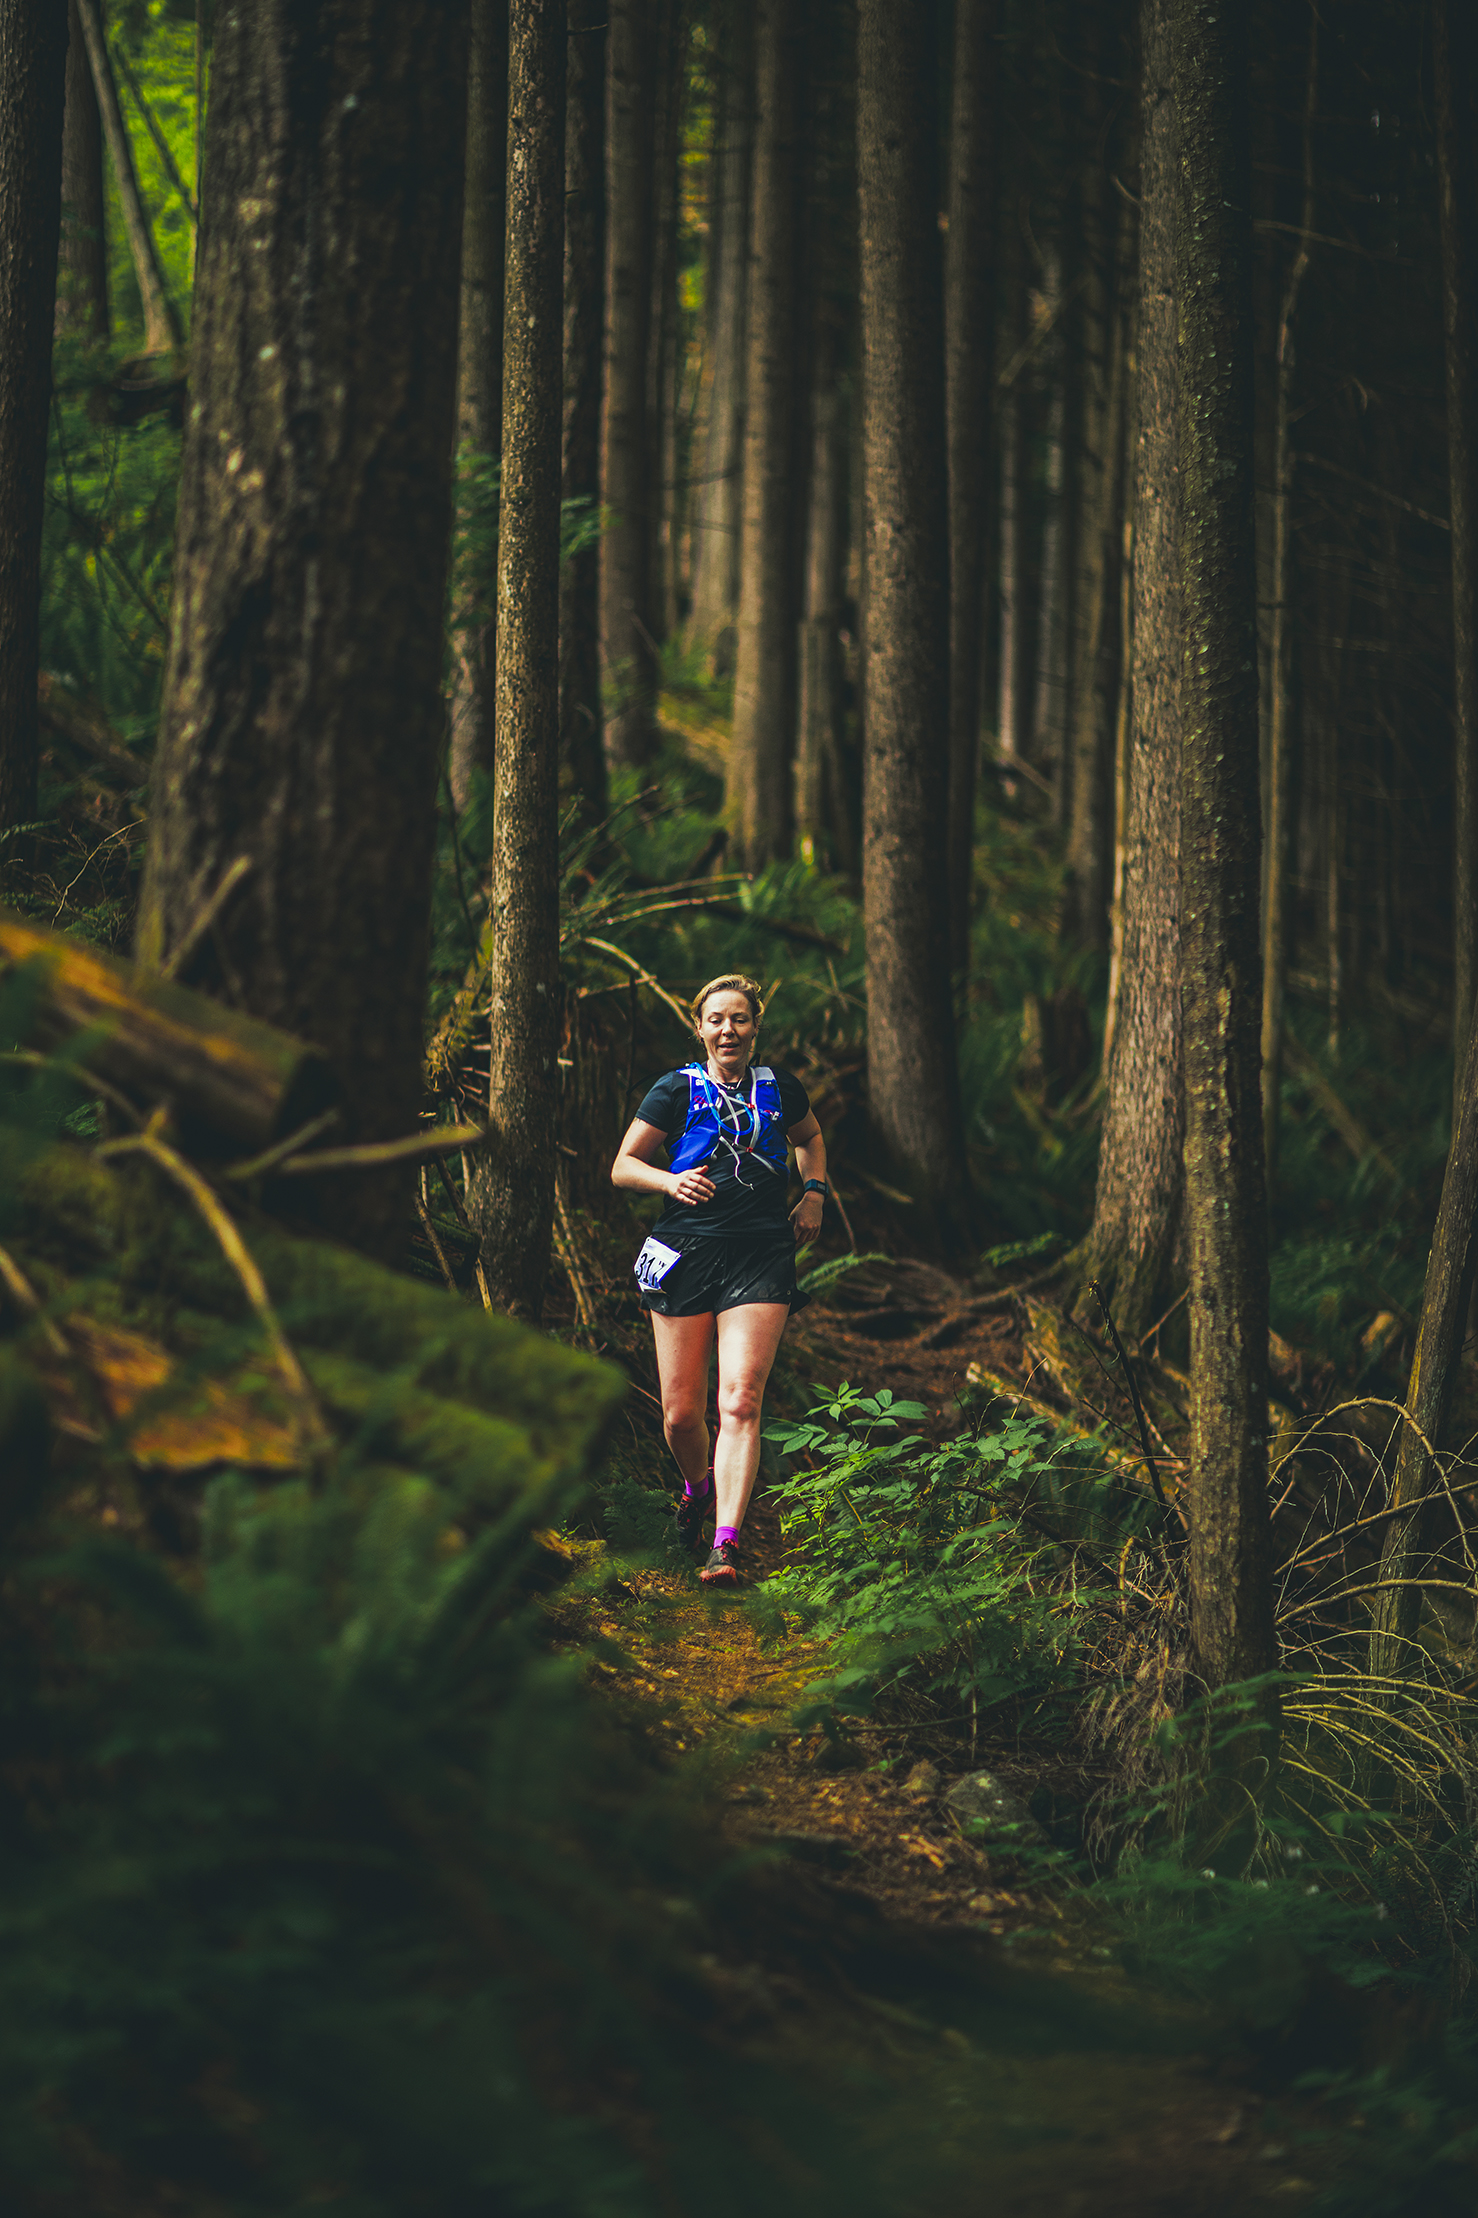 Fraser Valley Trail Races - Bear Mountain - IMG2_2372 by  Brice Ferre Studio - Vancouver Portrait Adventure and Athlete Photographer.jpg